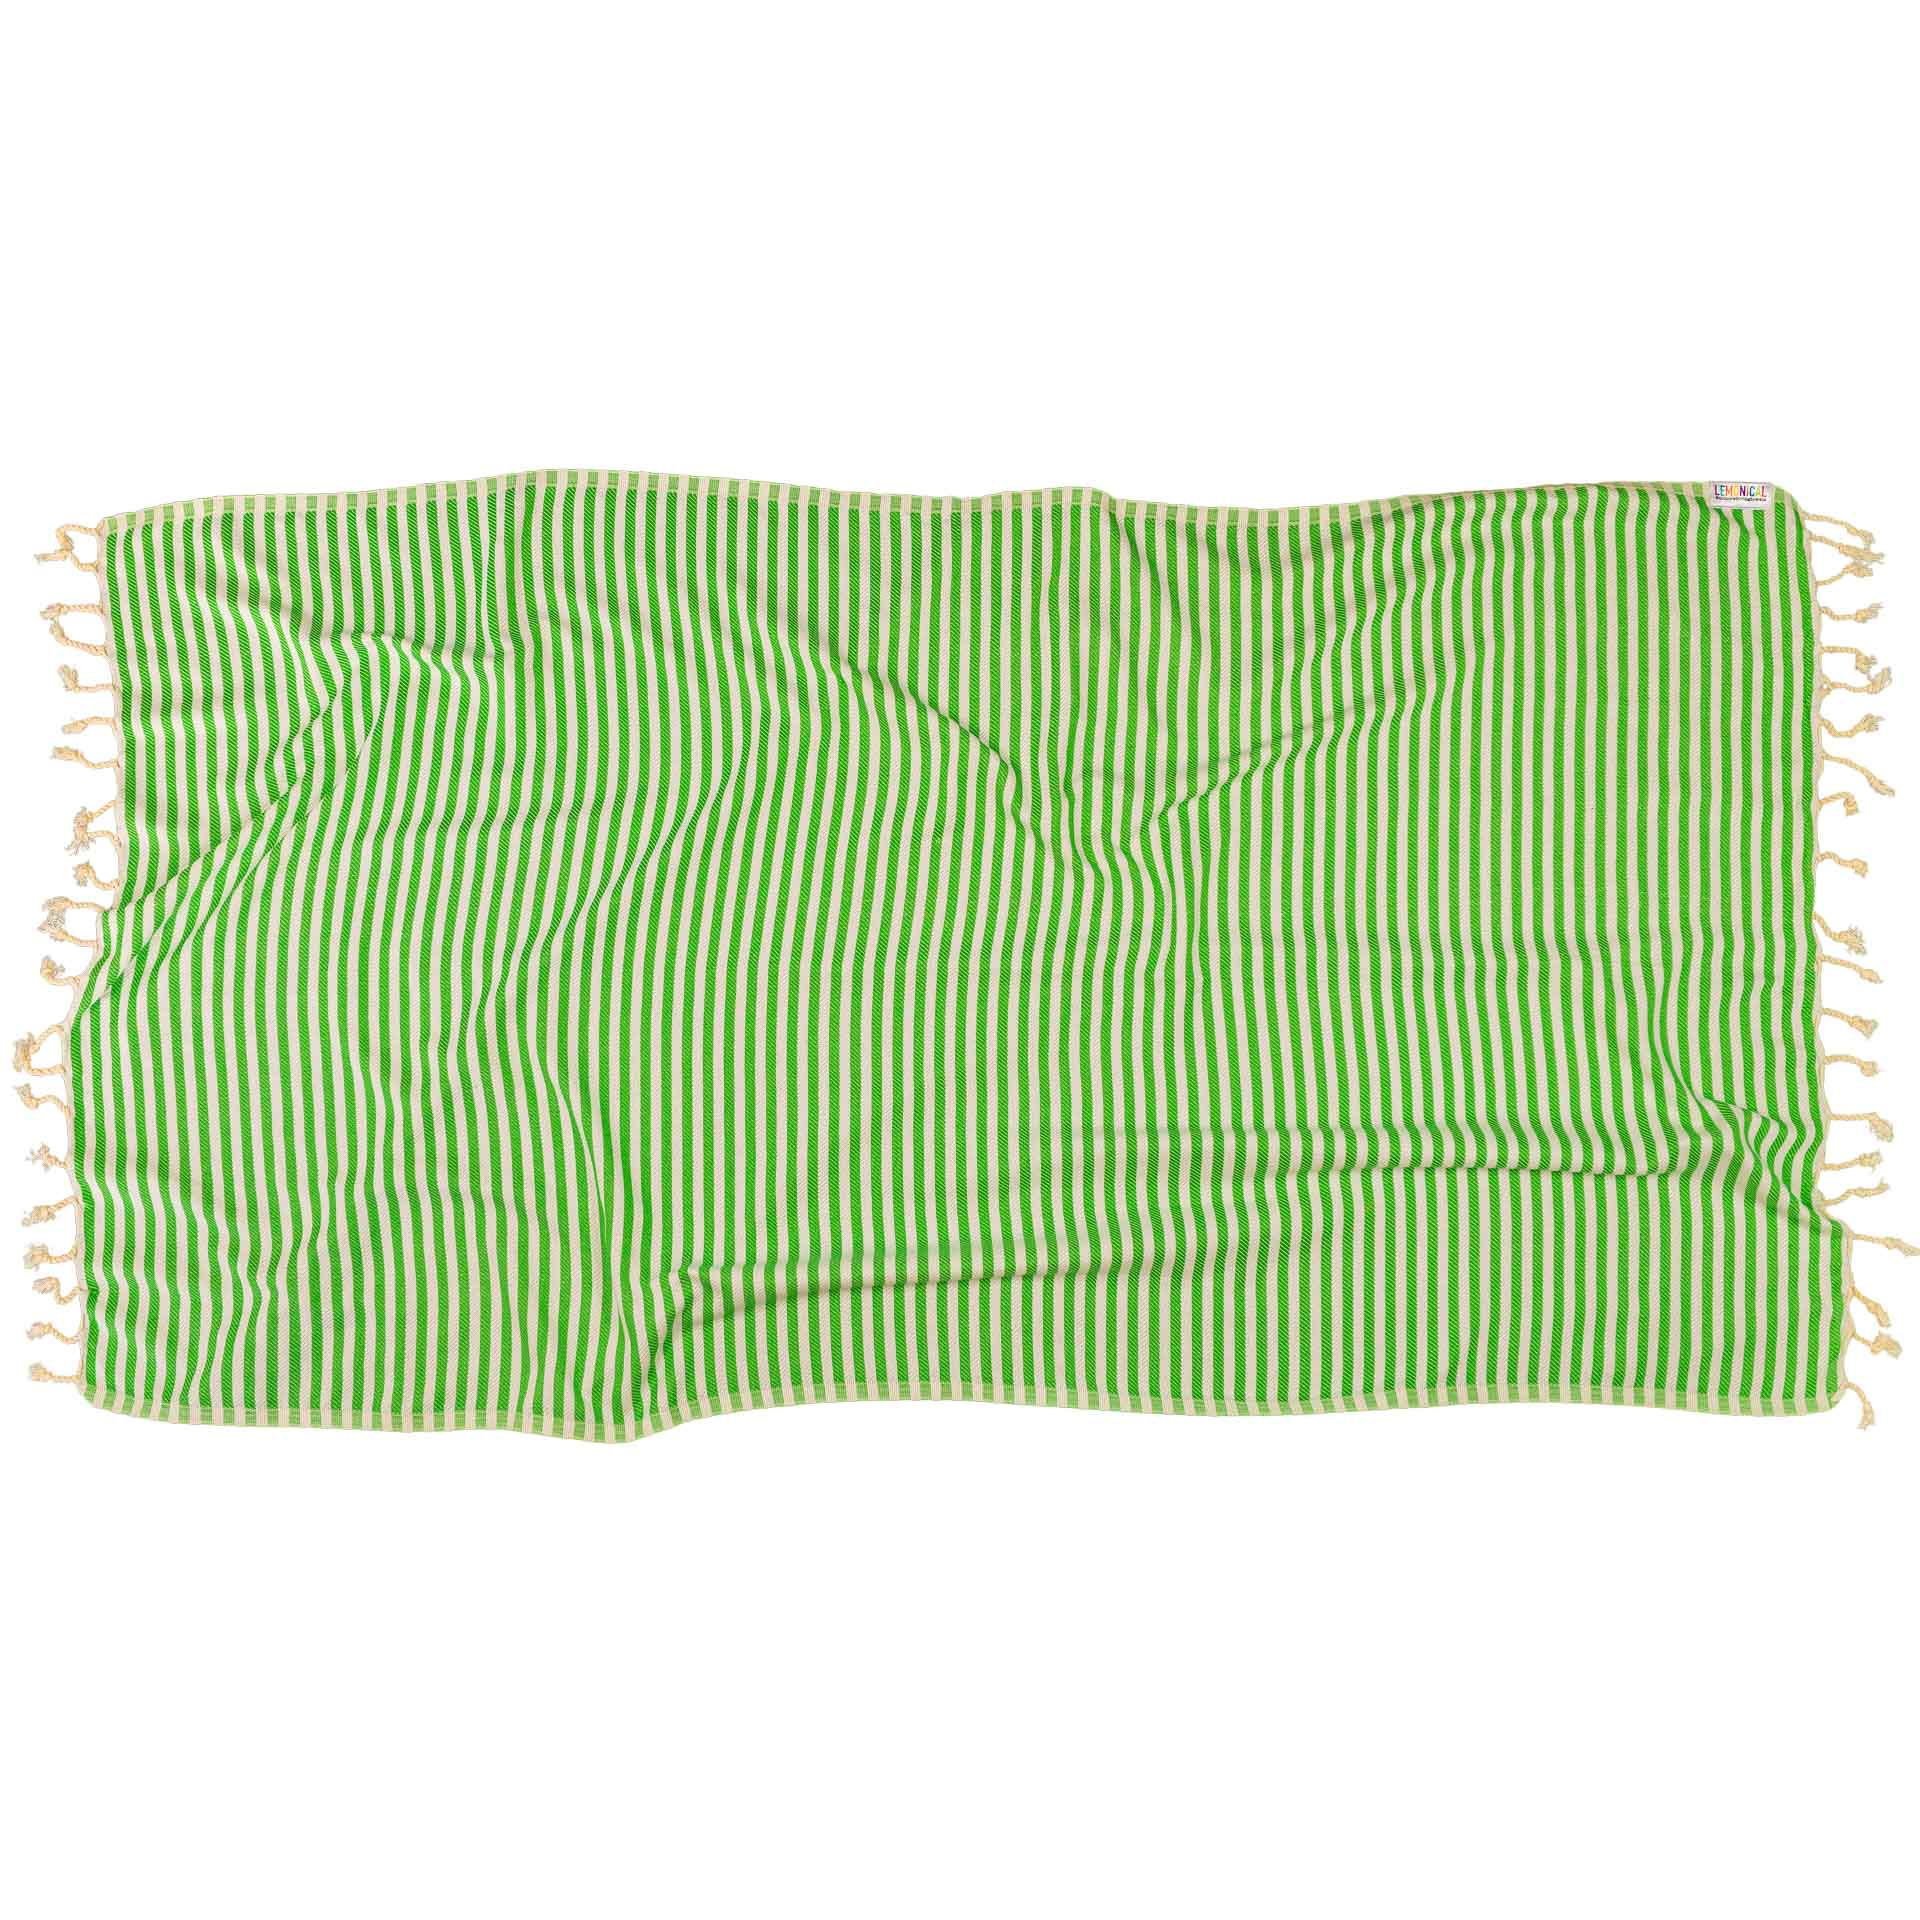 NAUTIC-GREEN-Towel-Lemonical-1